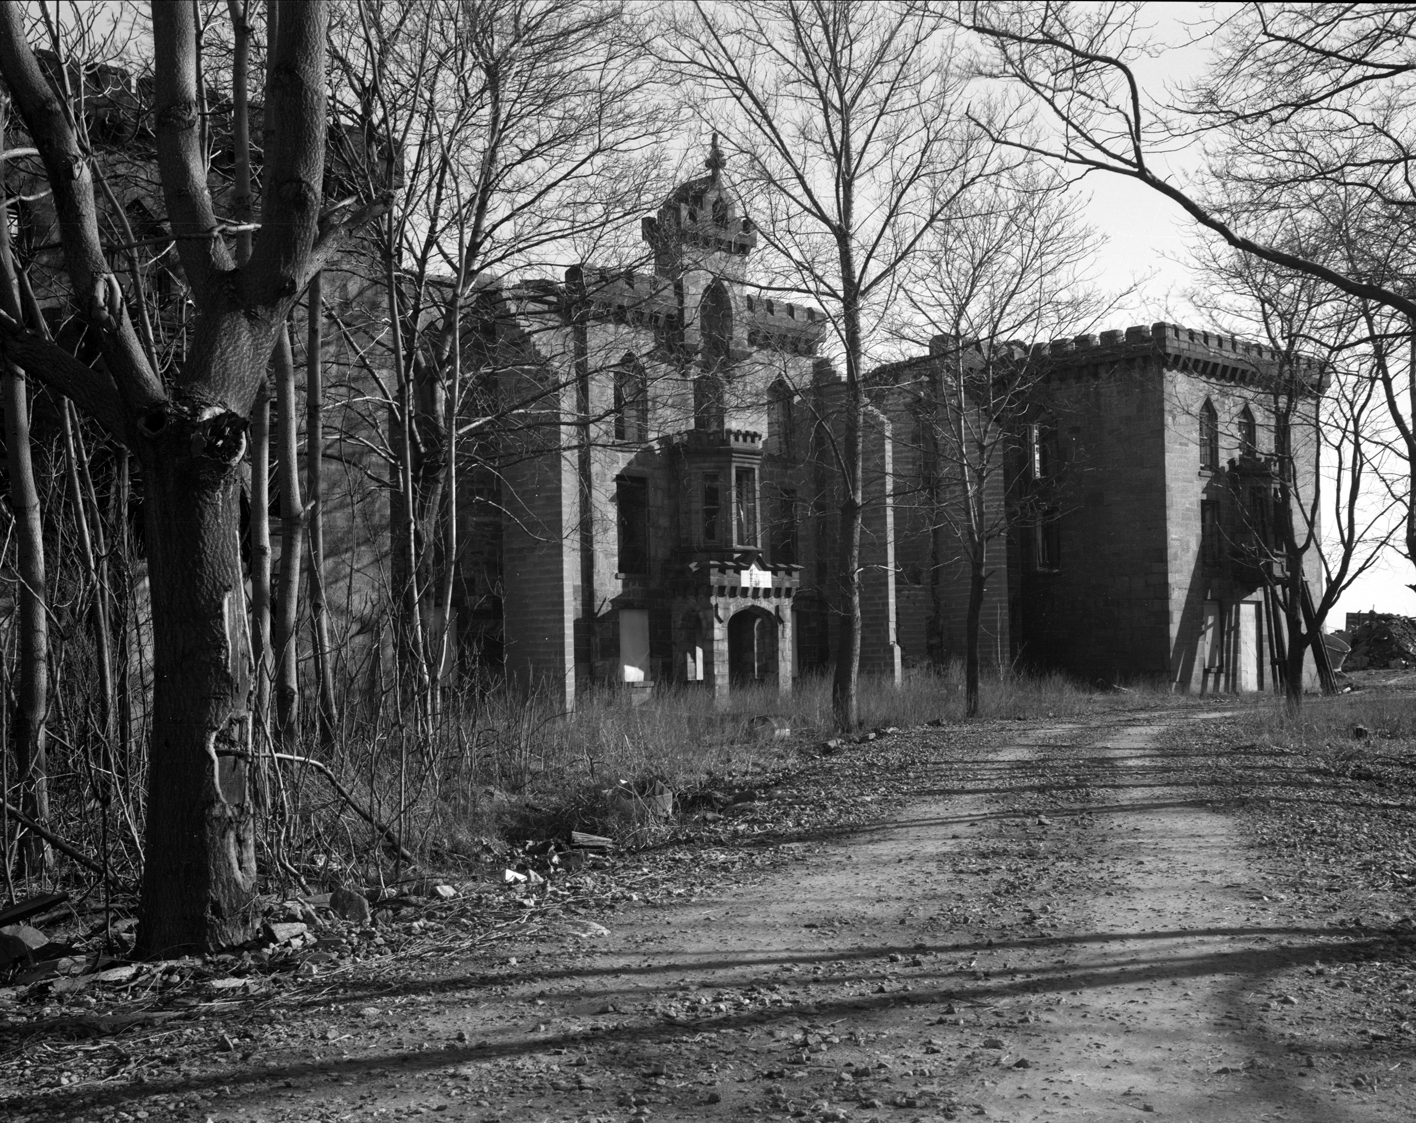 In 1976, the main façade of the Smallpox Hospital was more intact and the building was surrounded by many more trees, New York City Landmarks Preservation Commission